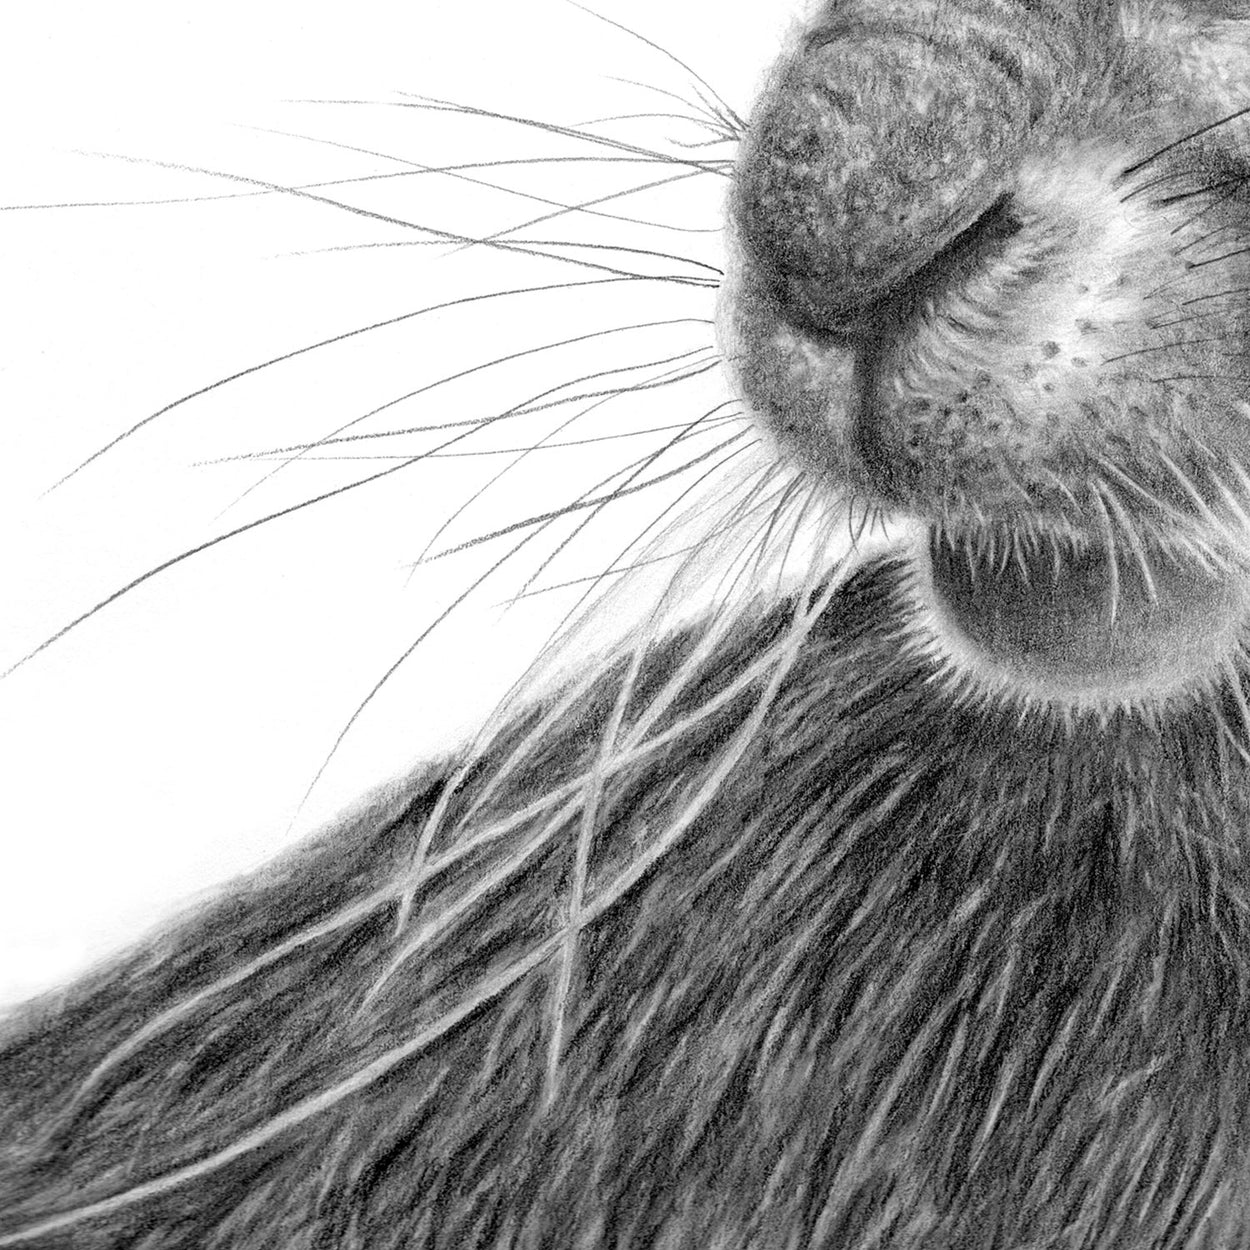 Hare Drawing Close-up 2 - The Thriving Wild - Jill Dimond